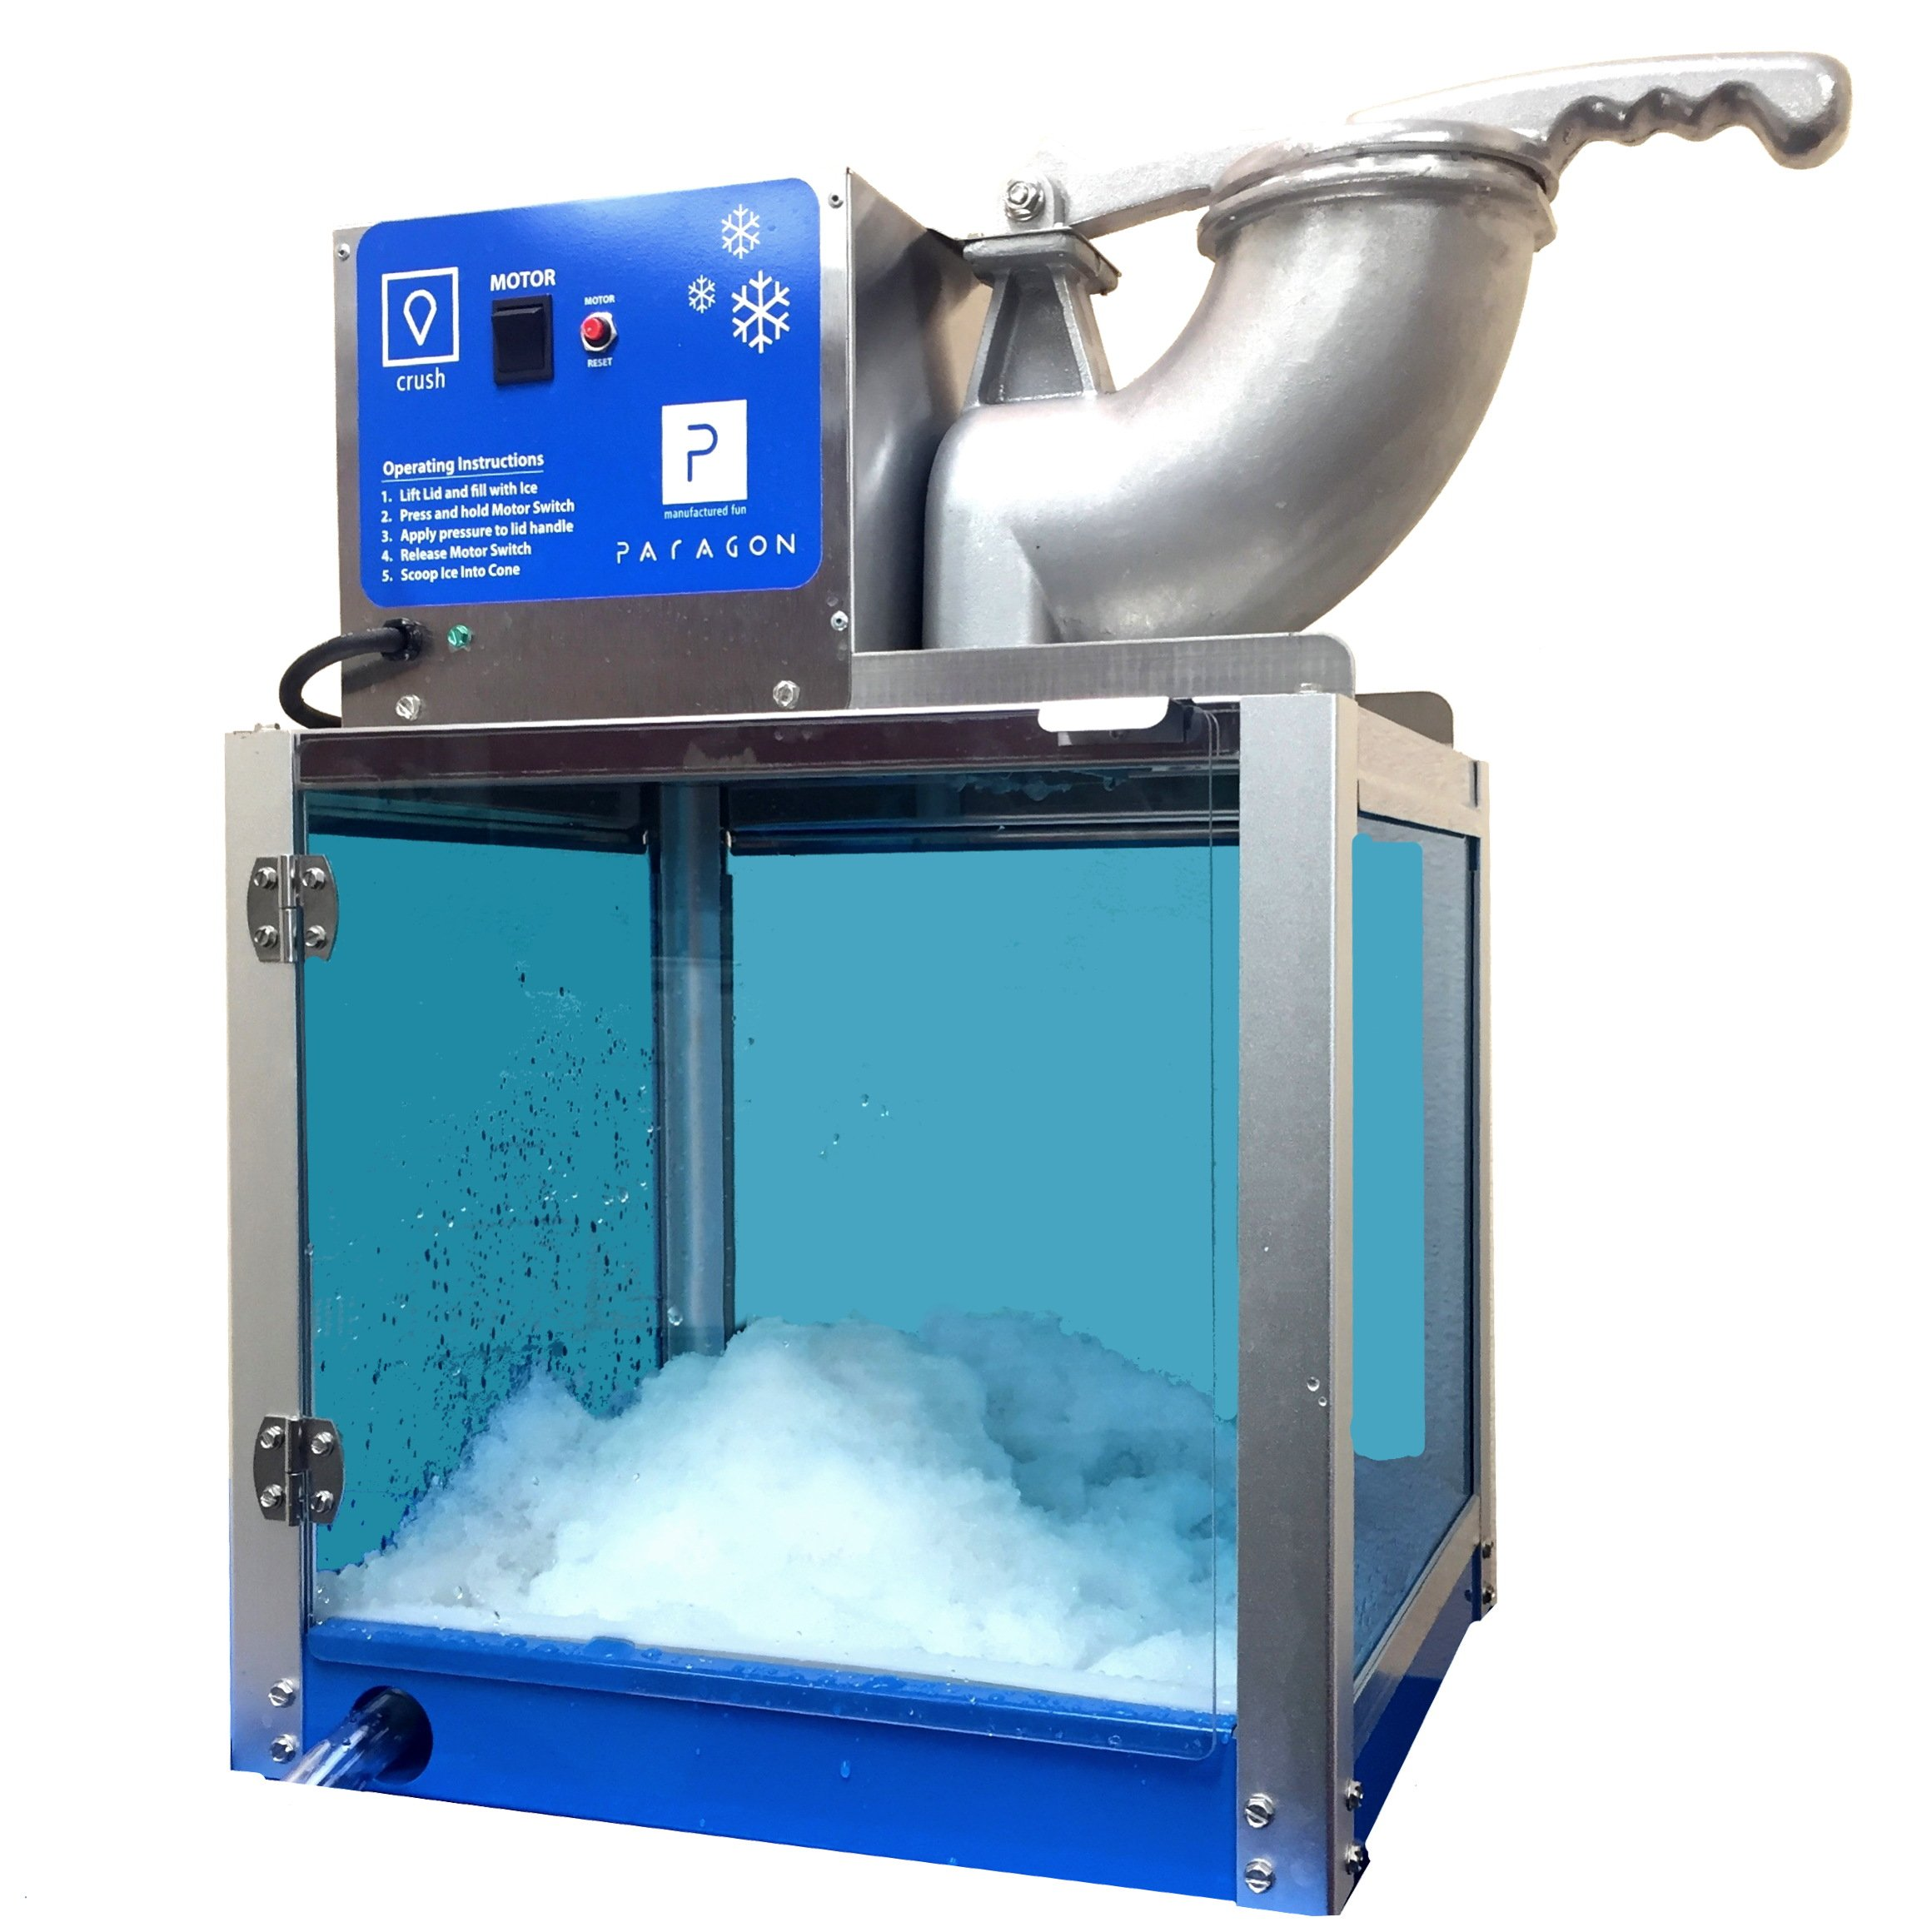 Paragon Arctic Blast SNO Cone Machine for Professional Concessionaires Requiring Commercial Heavy Duty Snow Cone Equipment 1/3 Horse Power 792 Watts by Paragon - Manufactured Fun